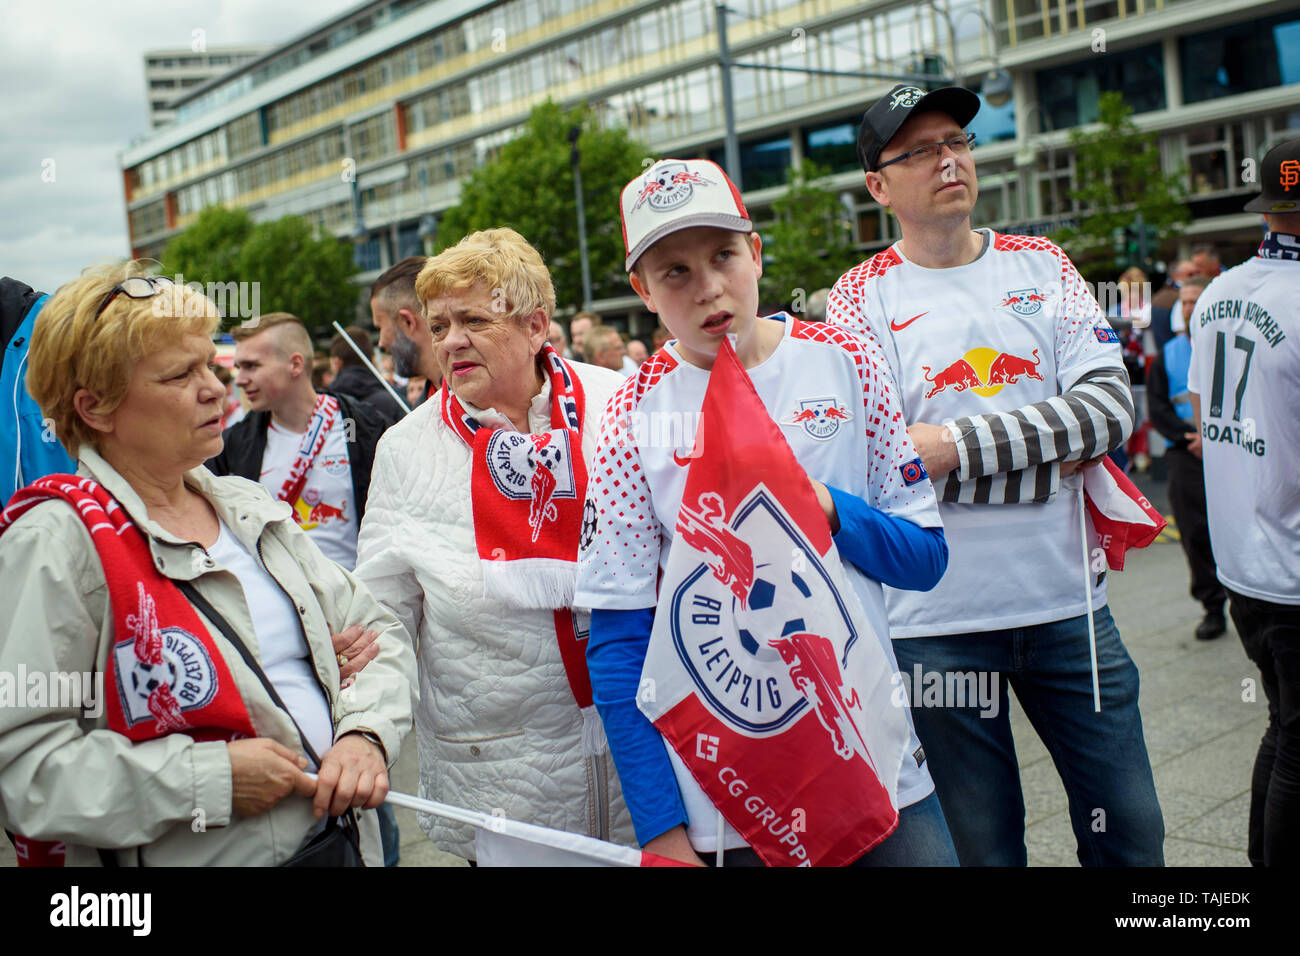 Berlin, Germany. 25th May, 2019. Football, DFB Cup Final RB Leipzig - FC Bayern Munich. Fans of RB Leipzig meet before the game at the Breitscheidplatz. Credit: Gregor Fischer/dpa/Alamy Live News - Stock Image